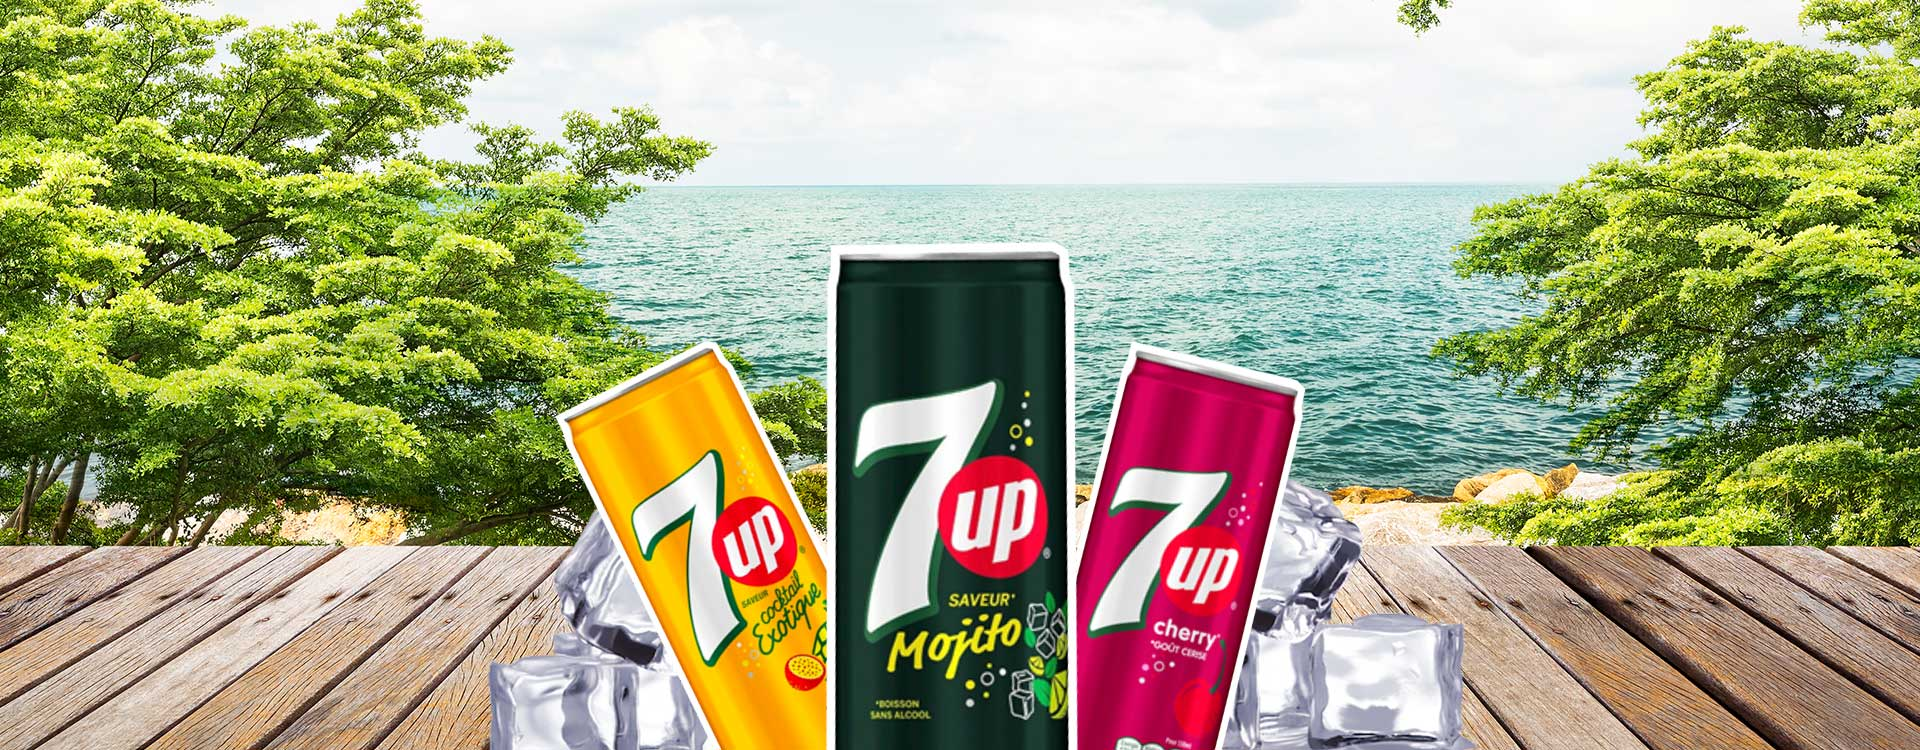 7up-website-banner3